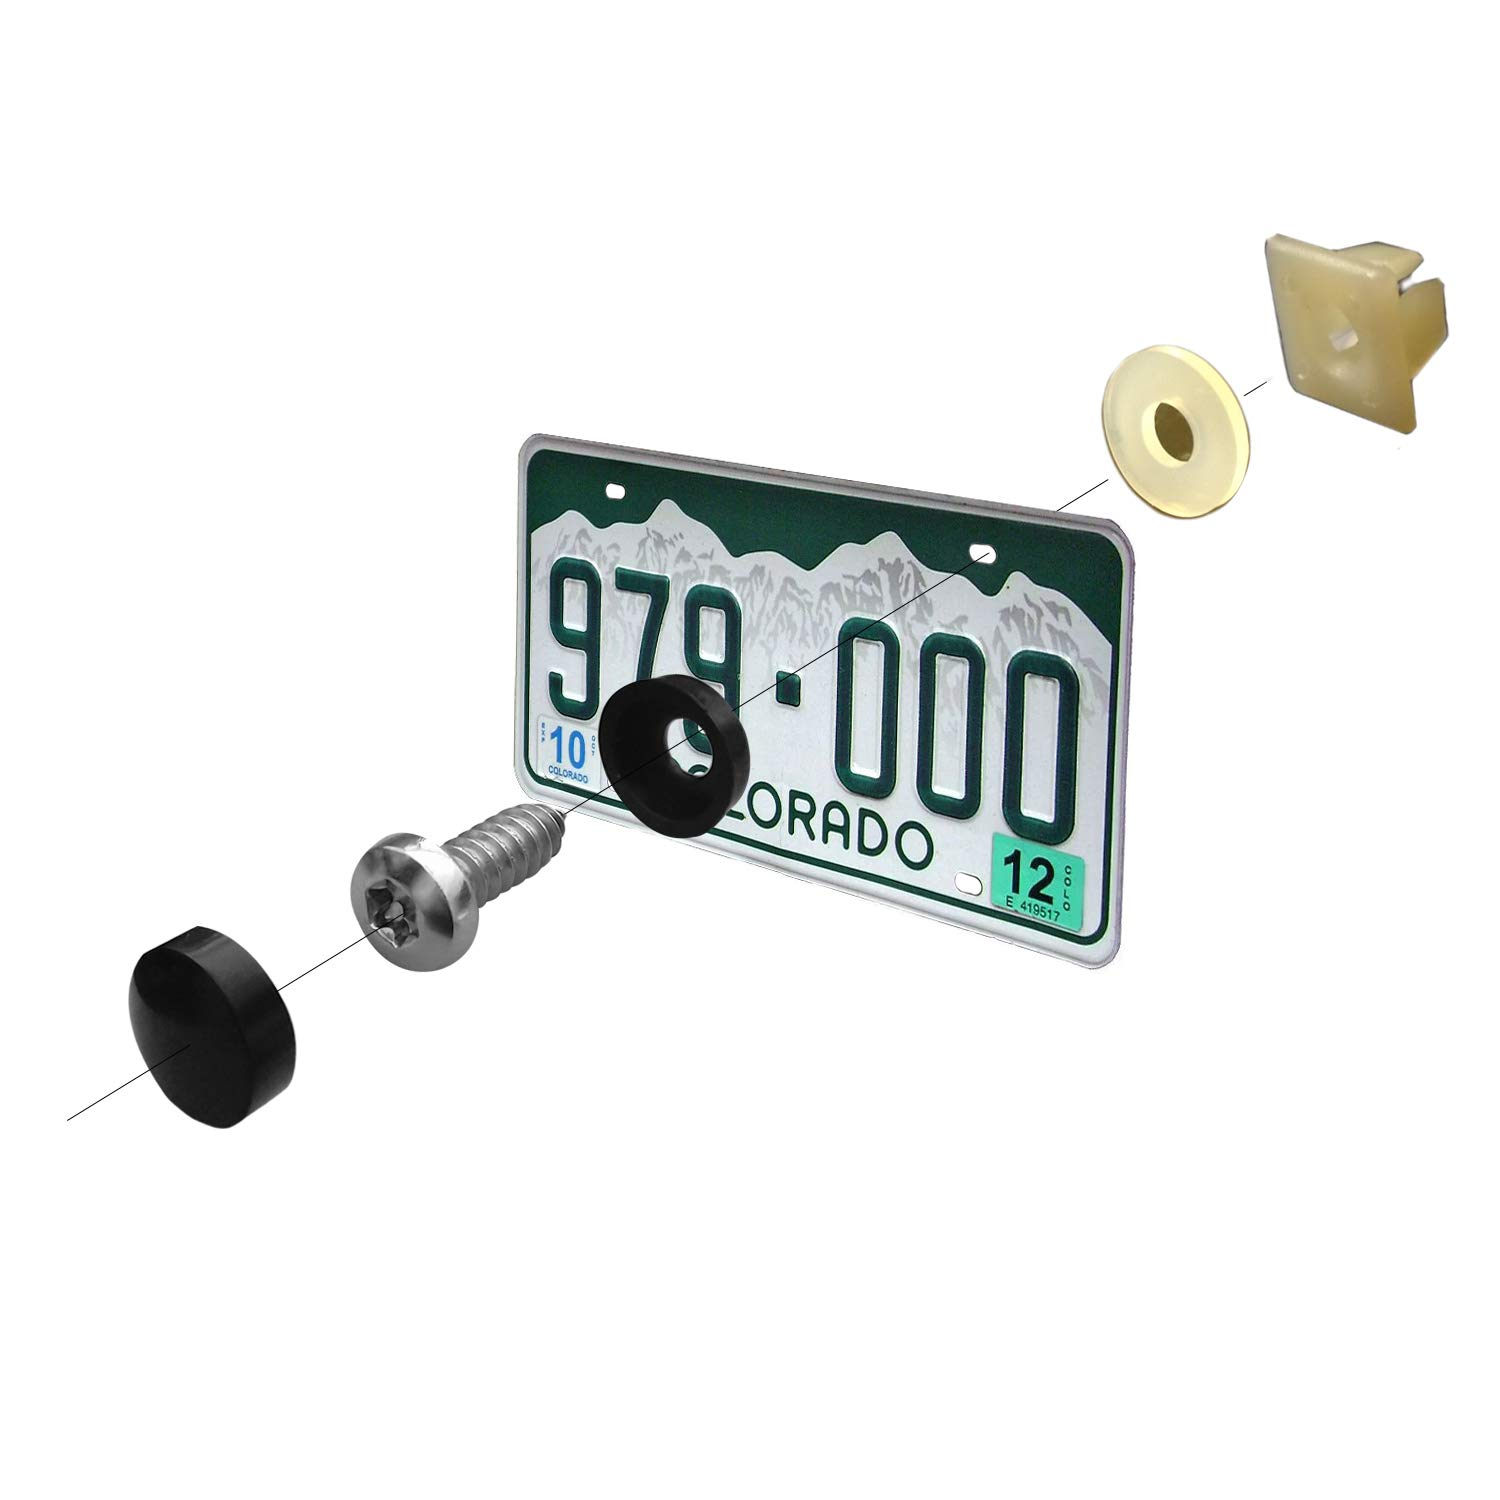 EIEVA Stainless License Plate Screws-M620 self-Tapping Anti-Theft Tamper Resistant License Plate Bolts Nuts Lock Fasteners and Black License Plates Screw Cover Cap for car